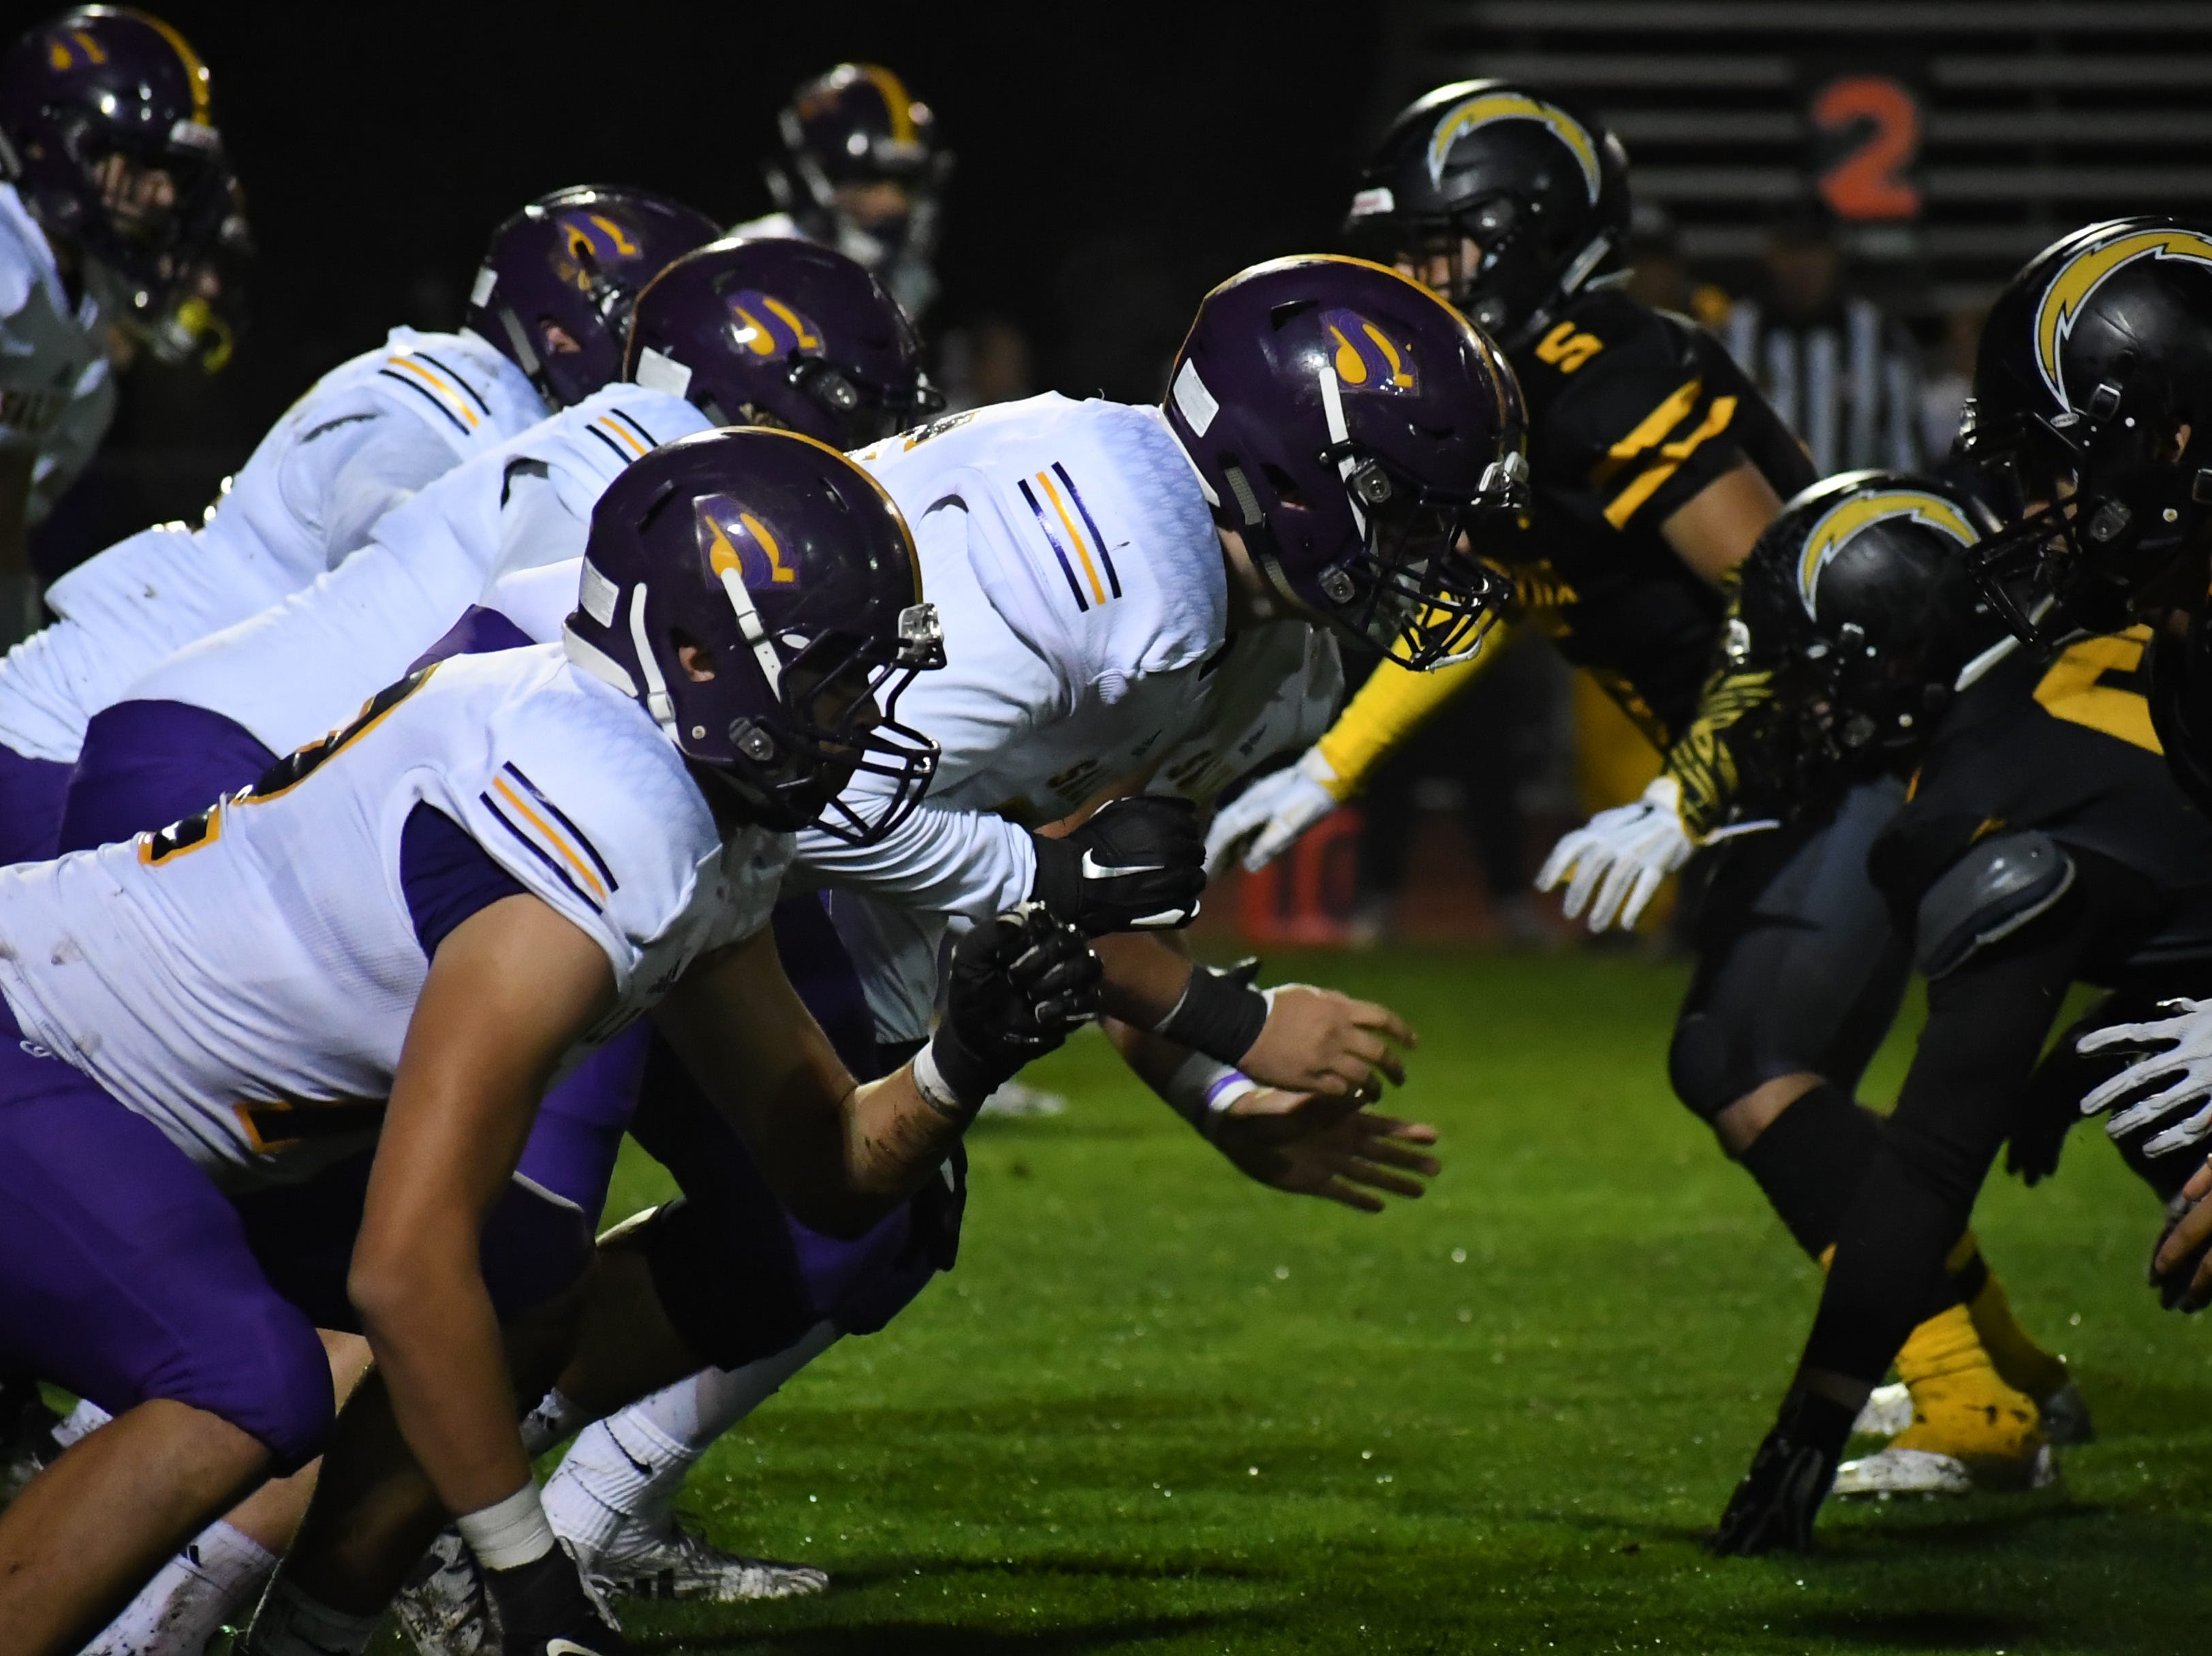 The Salinas offensive line fires off during their opening drive.